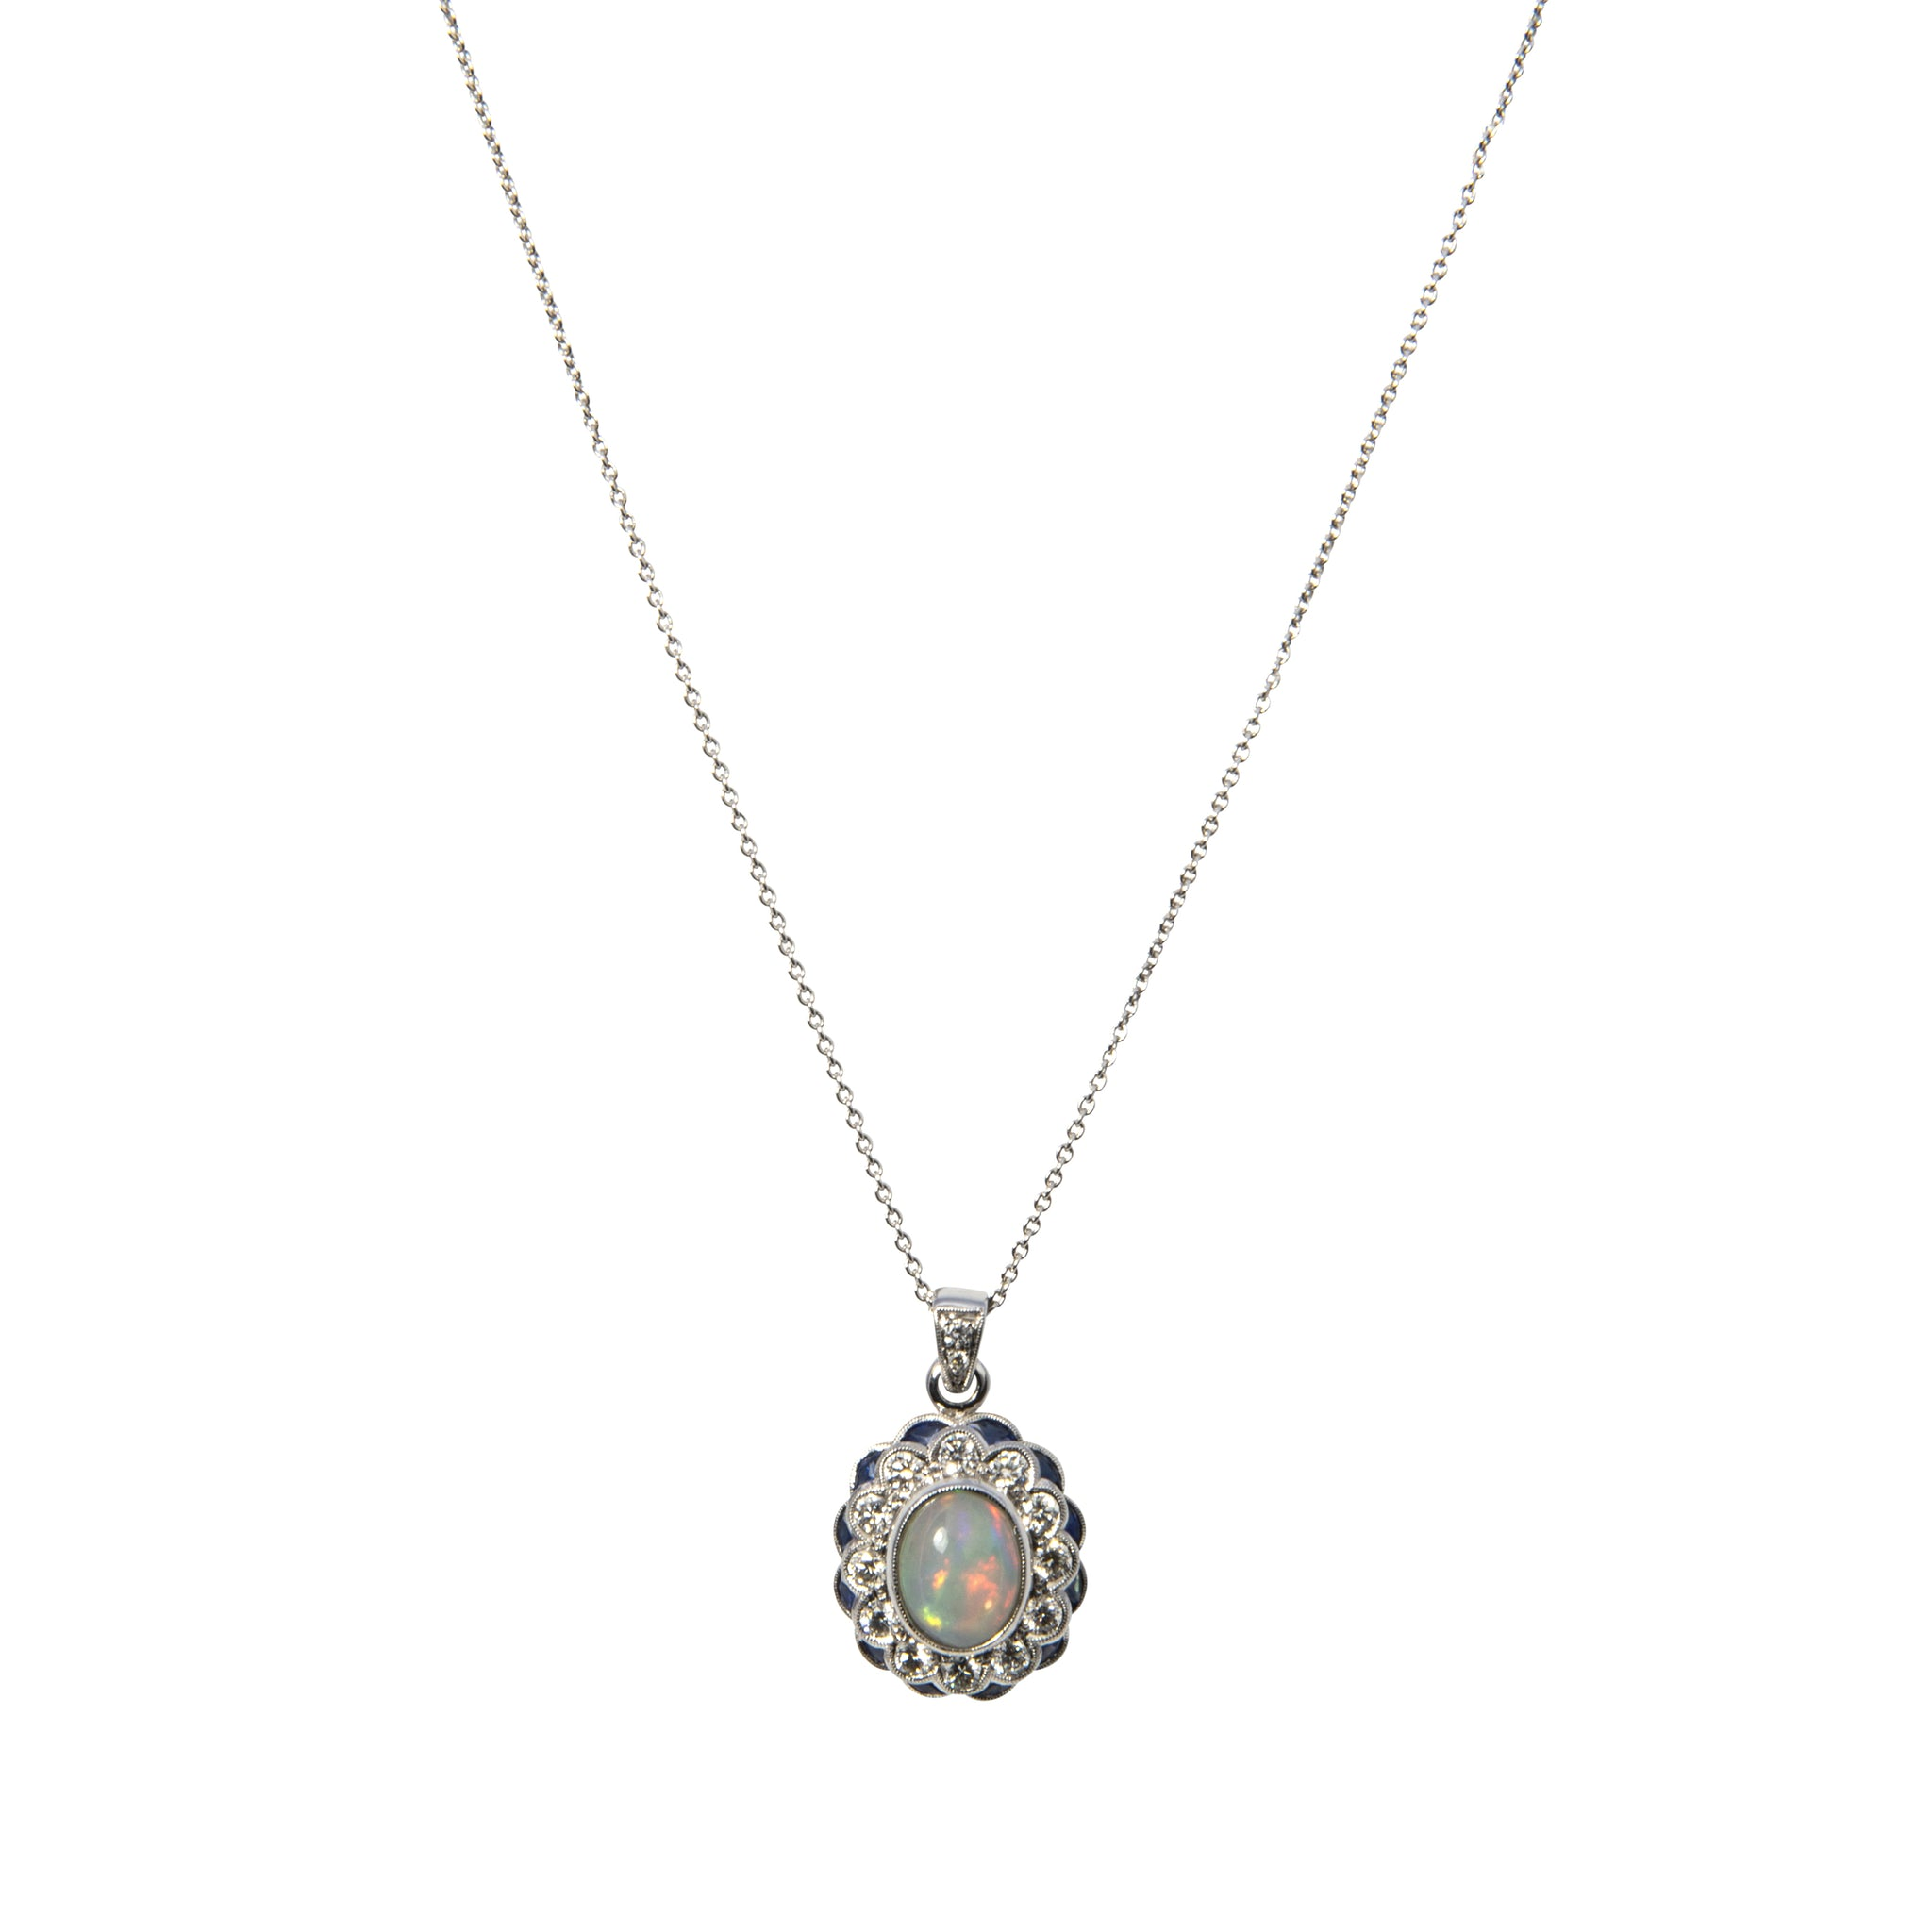 This necklace features a pendant with an oval cabochon opal surrounded by 12 round brilliant diamonds and 12 fantasy cut blue sapphires, as well as 2 round brilliant diamonds accenting the bail, all bezel set in 14K white gold with milgrain edges on an adjustable white gold chain.